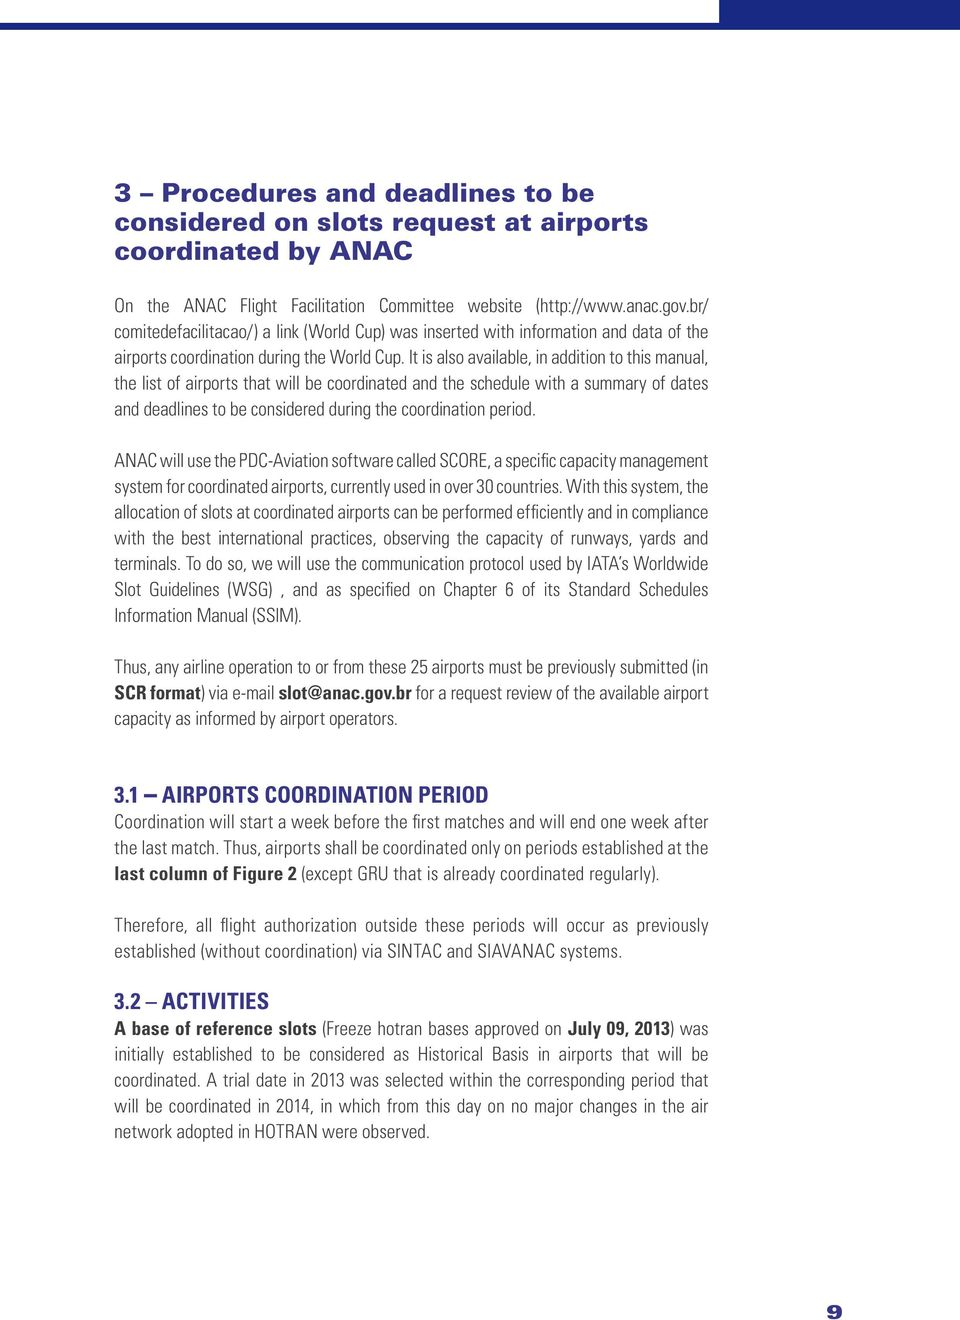 It is also available, in addition to this manual, the list of airports that will be coordinated and the schedule with a summary of dates and deadlines to be considered during the coordination period.